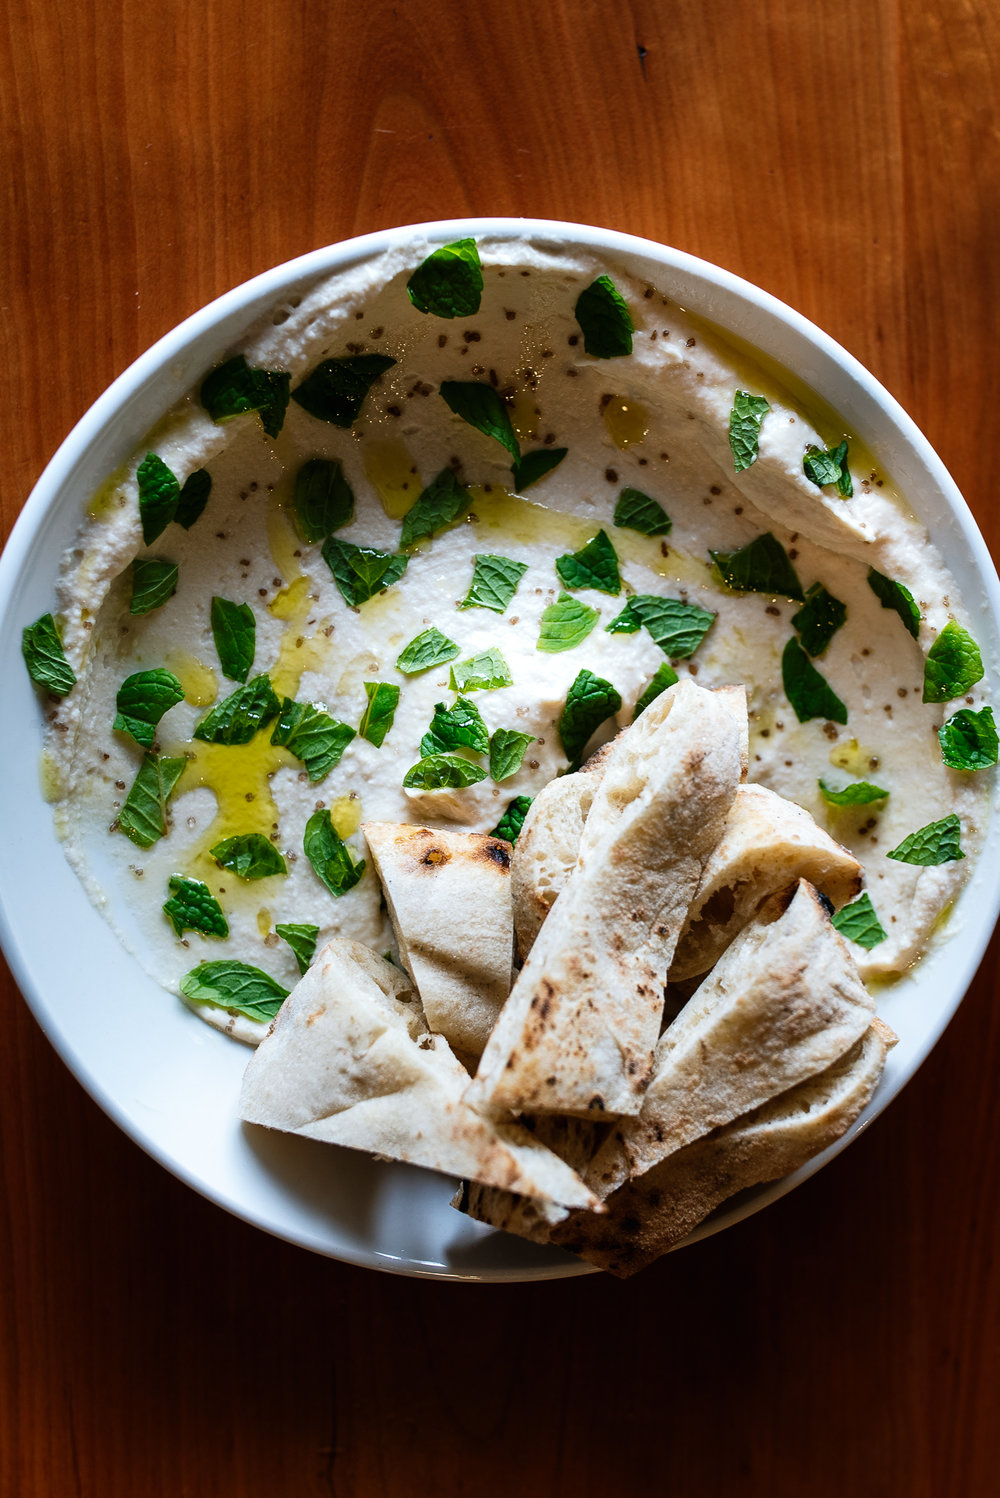 White bean hummus - mint, hearth breadSimple—but with the addition of the pop of mint and drizzle of high quality olive oil, perfection.